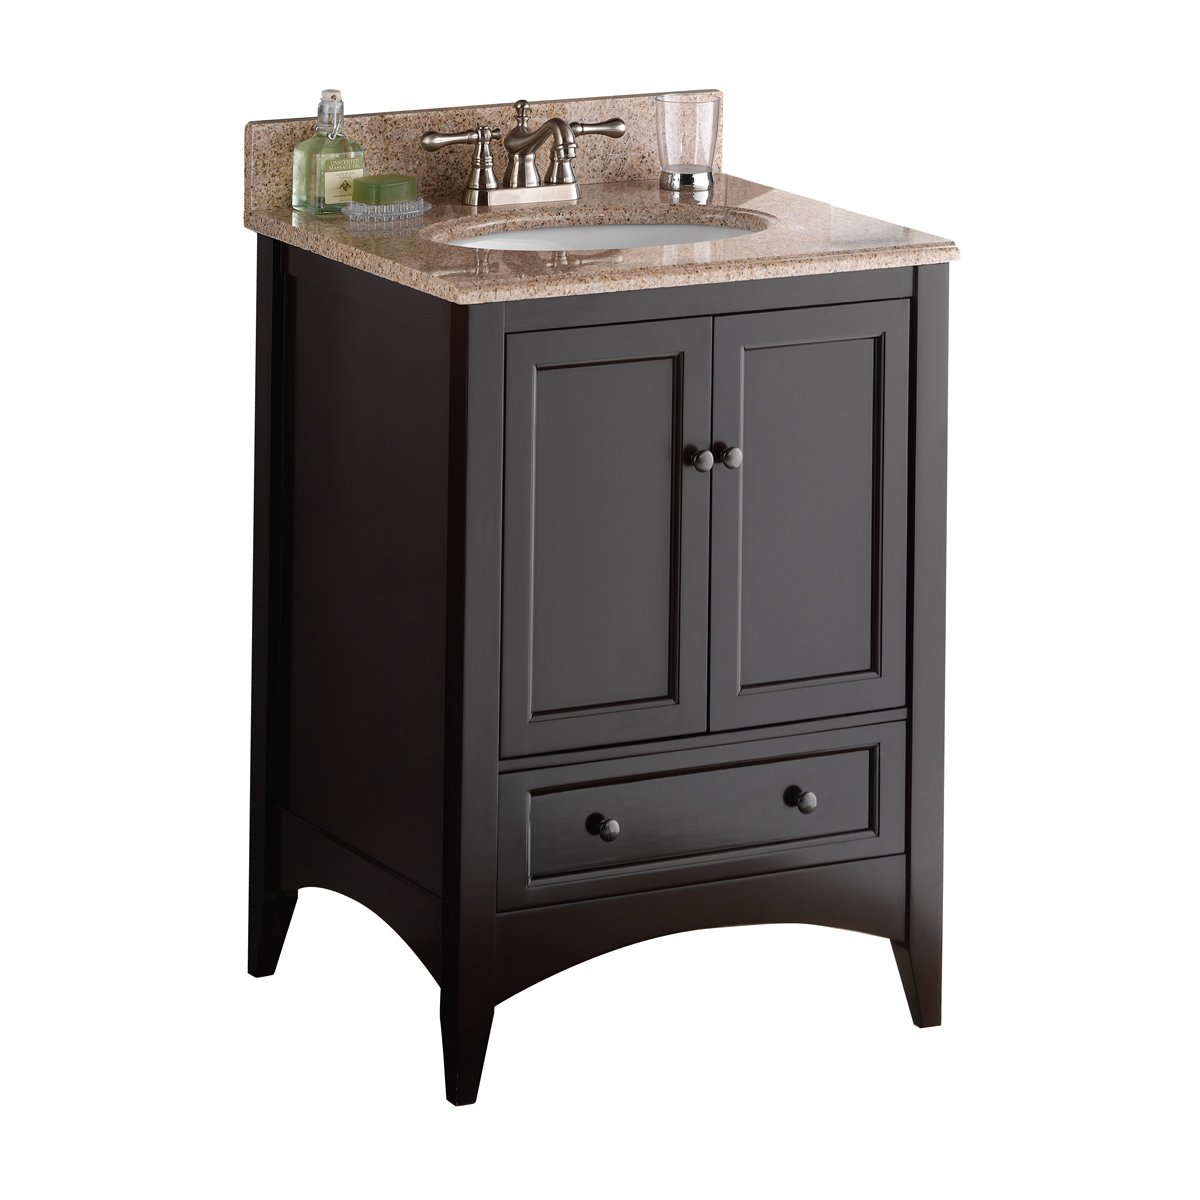 Delightful Foremost BECA2421D Berkshire 24 Inch Espresso Bathroom Vanity   Vanity Sinks    Amazon.com